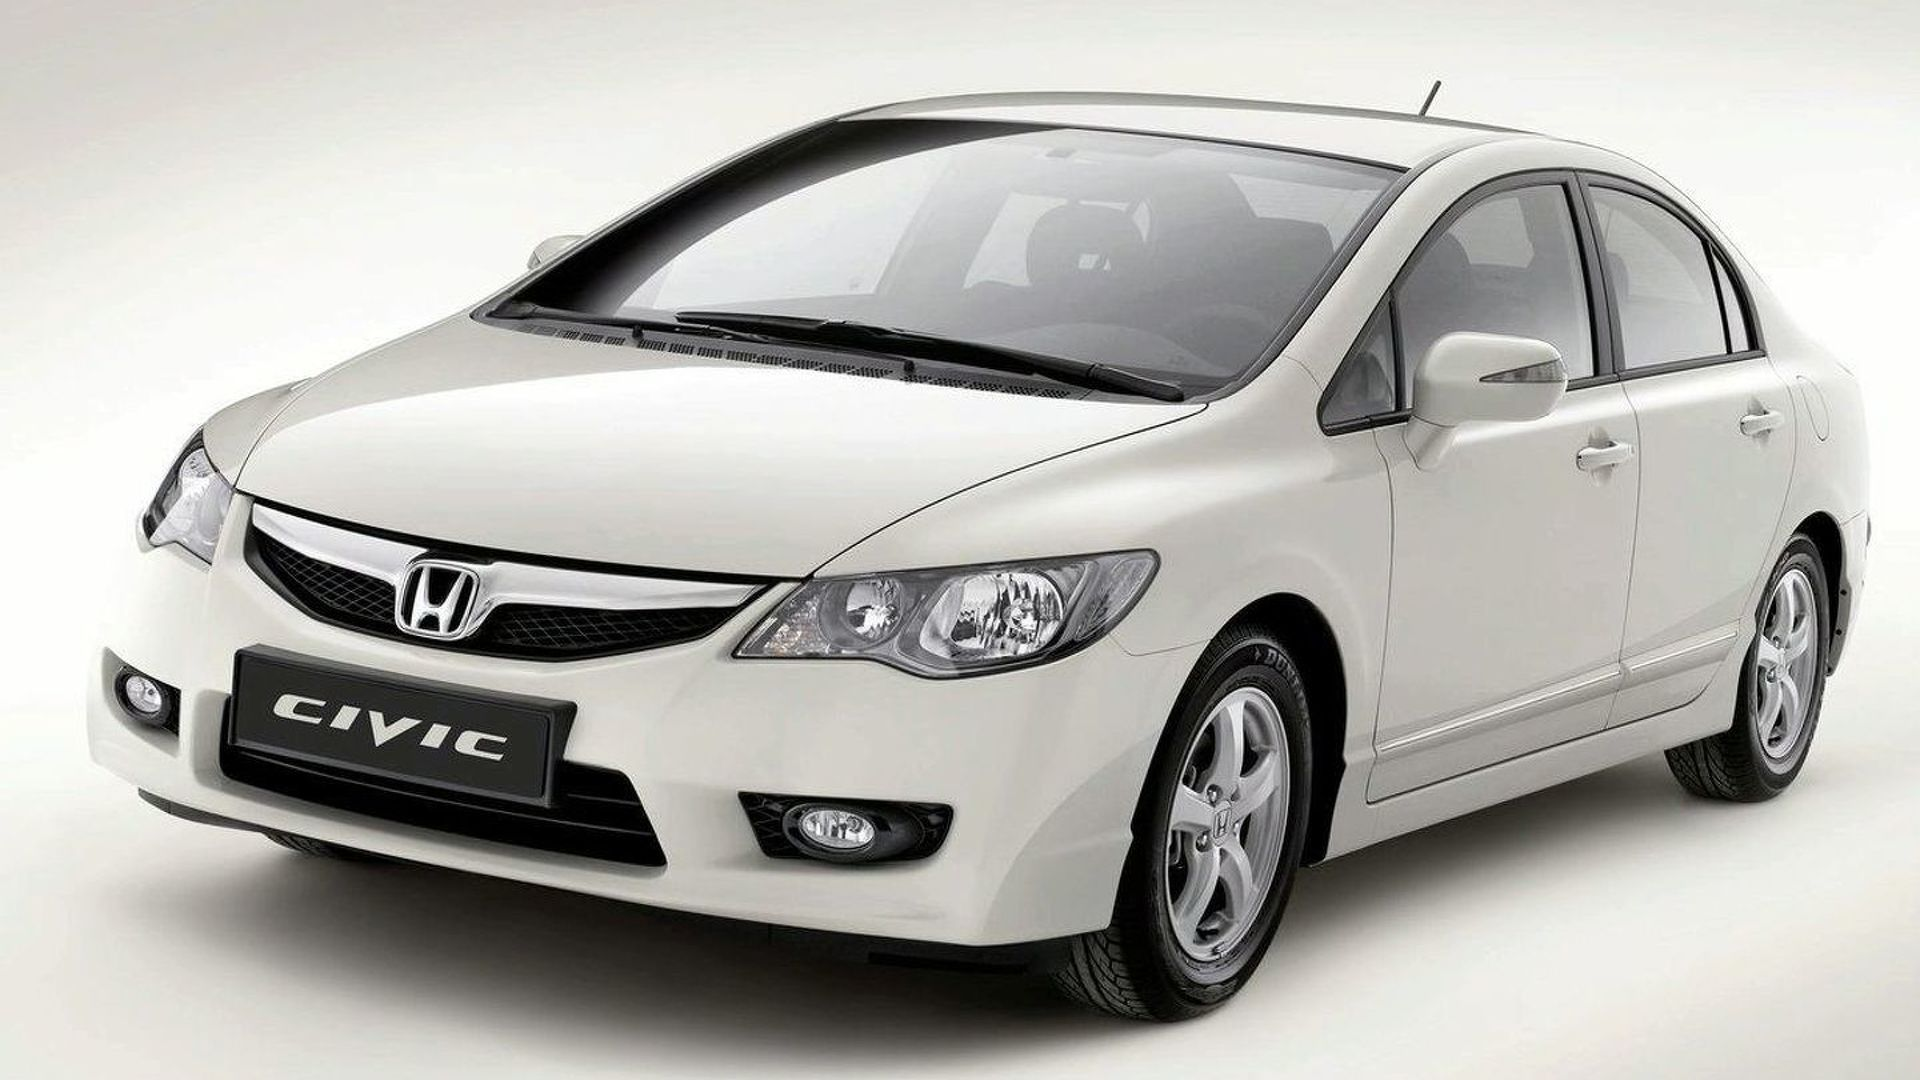 Honda Civic Reborn Model 2010 to 2014 Available For Rent